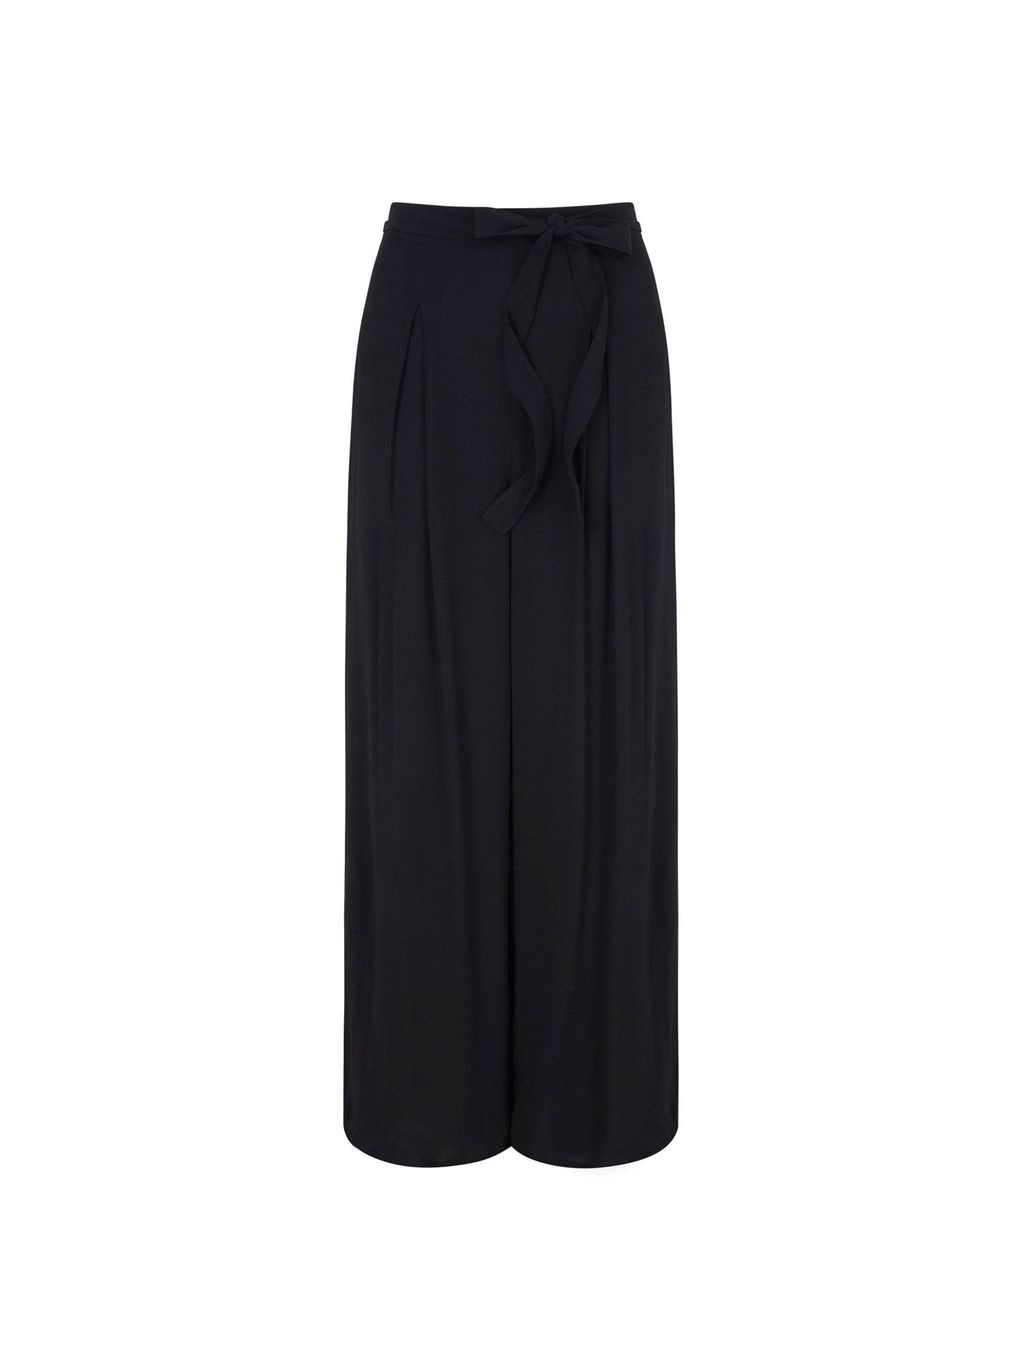 Palazzo Trousers, Black - length: standard; pattern: plain; style: palazzo; waist: high rise; waist detail: belted waist/tie at waist/drawstring; predominant colour: black; fibres: polyester/polyamide - 100%; texture group: crepes; fit: wide leg; pattern type: fabric; occasions: creative work; season: s/s 2016; wardrobe: basic